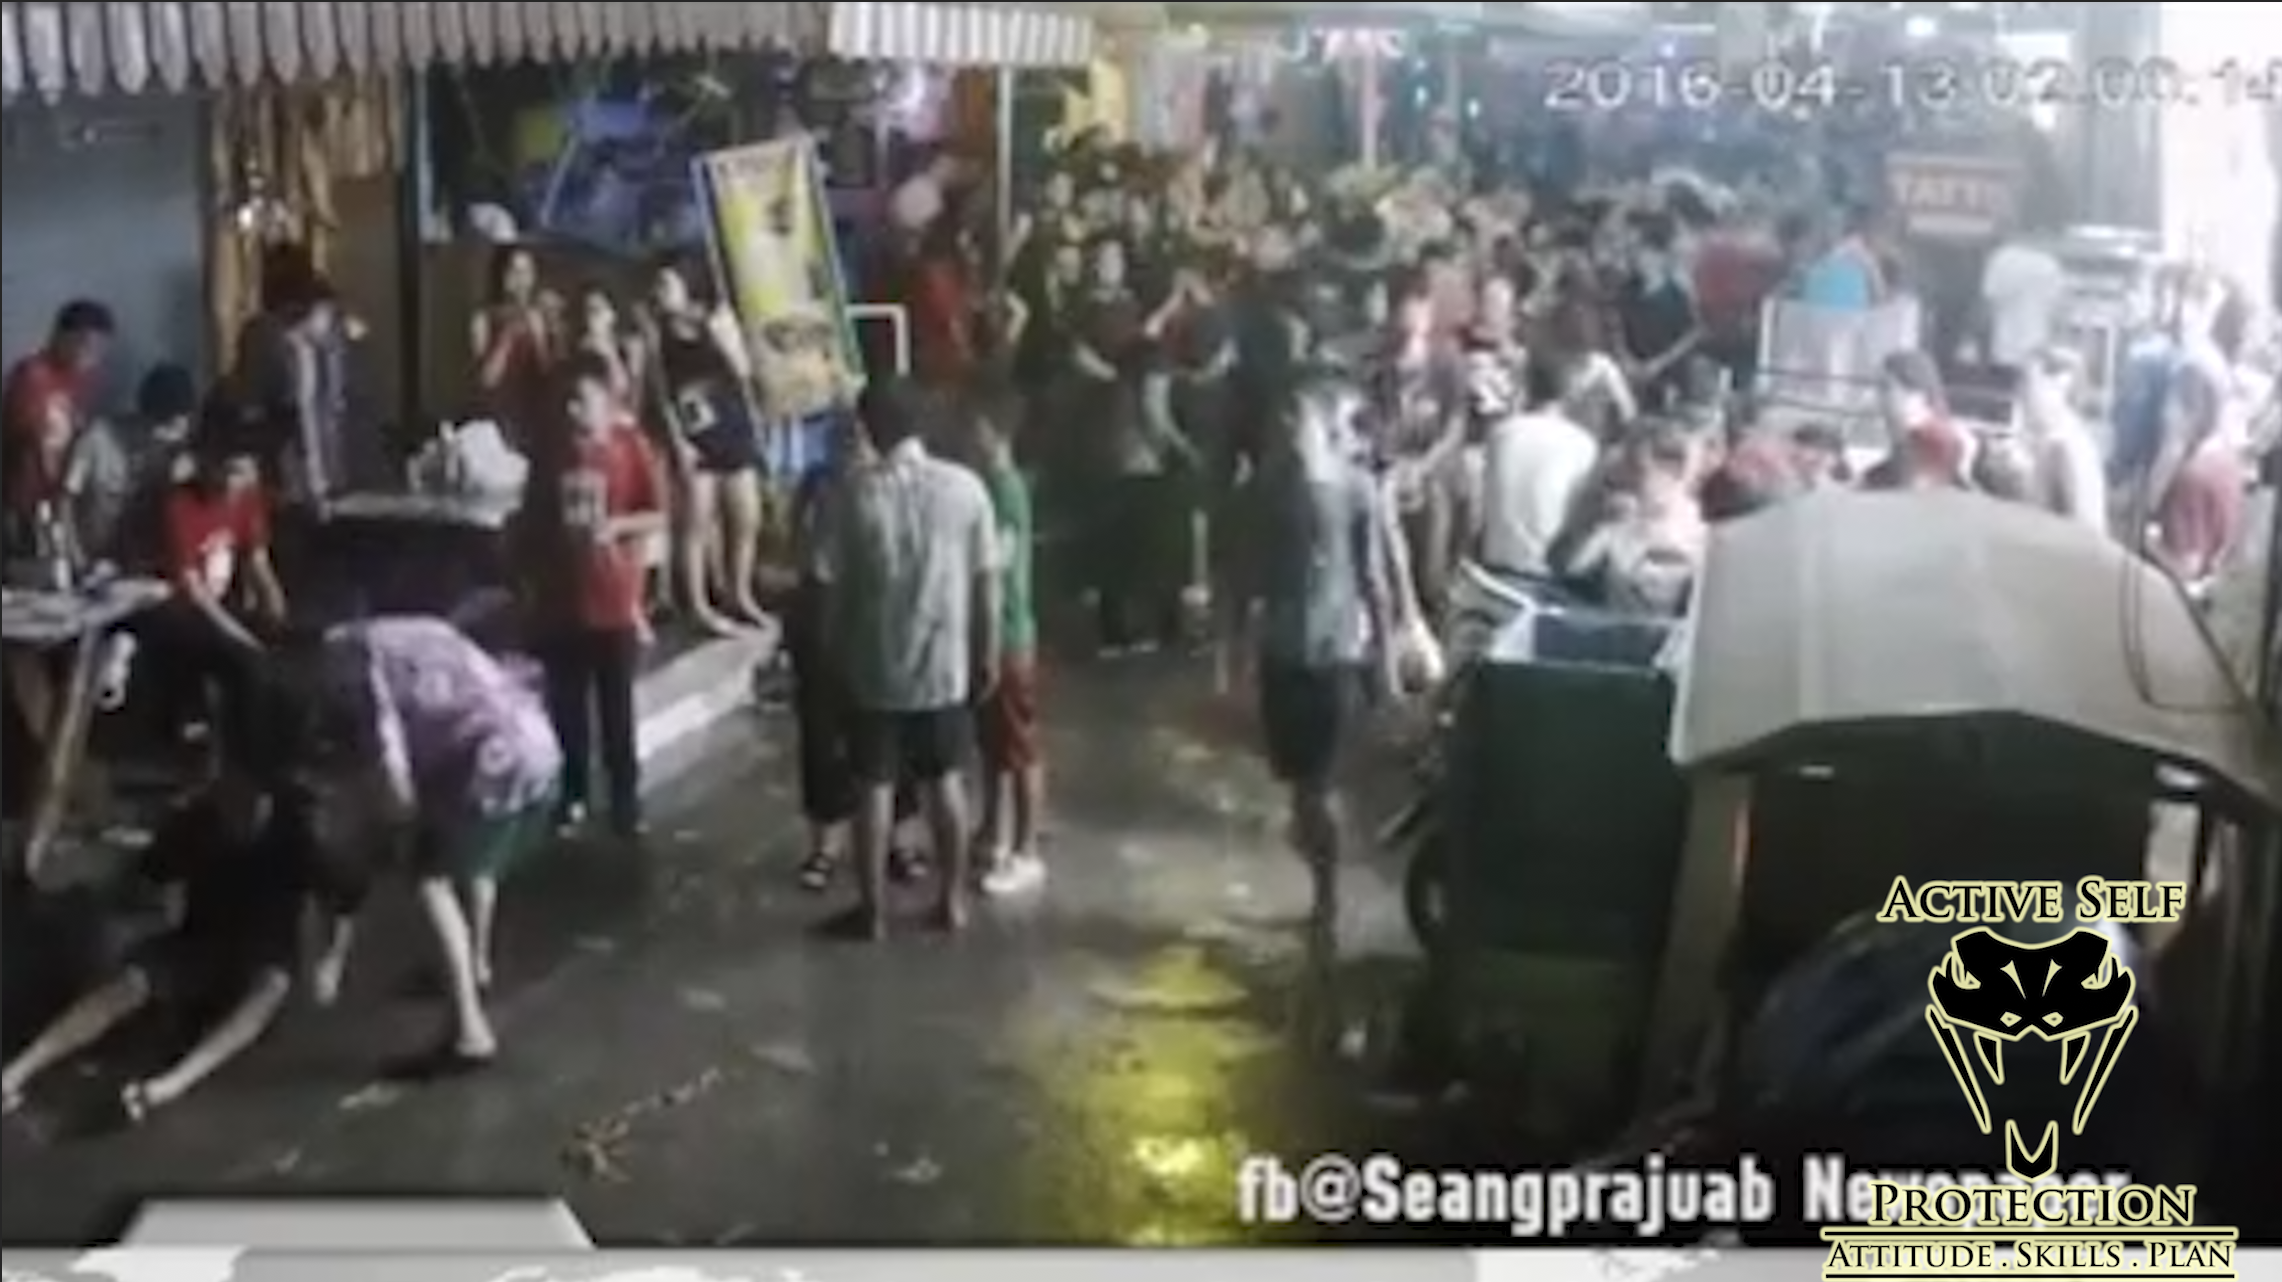 Caught on Camera: Tourists Attacked and Badly Beaten by Locals